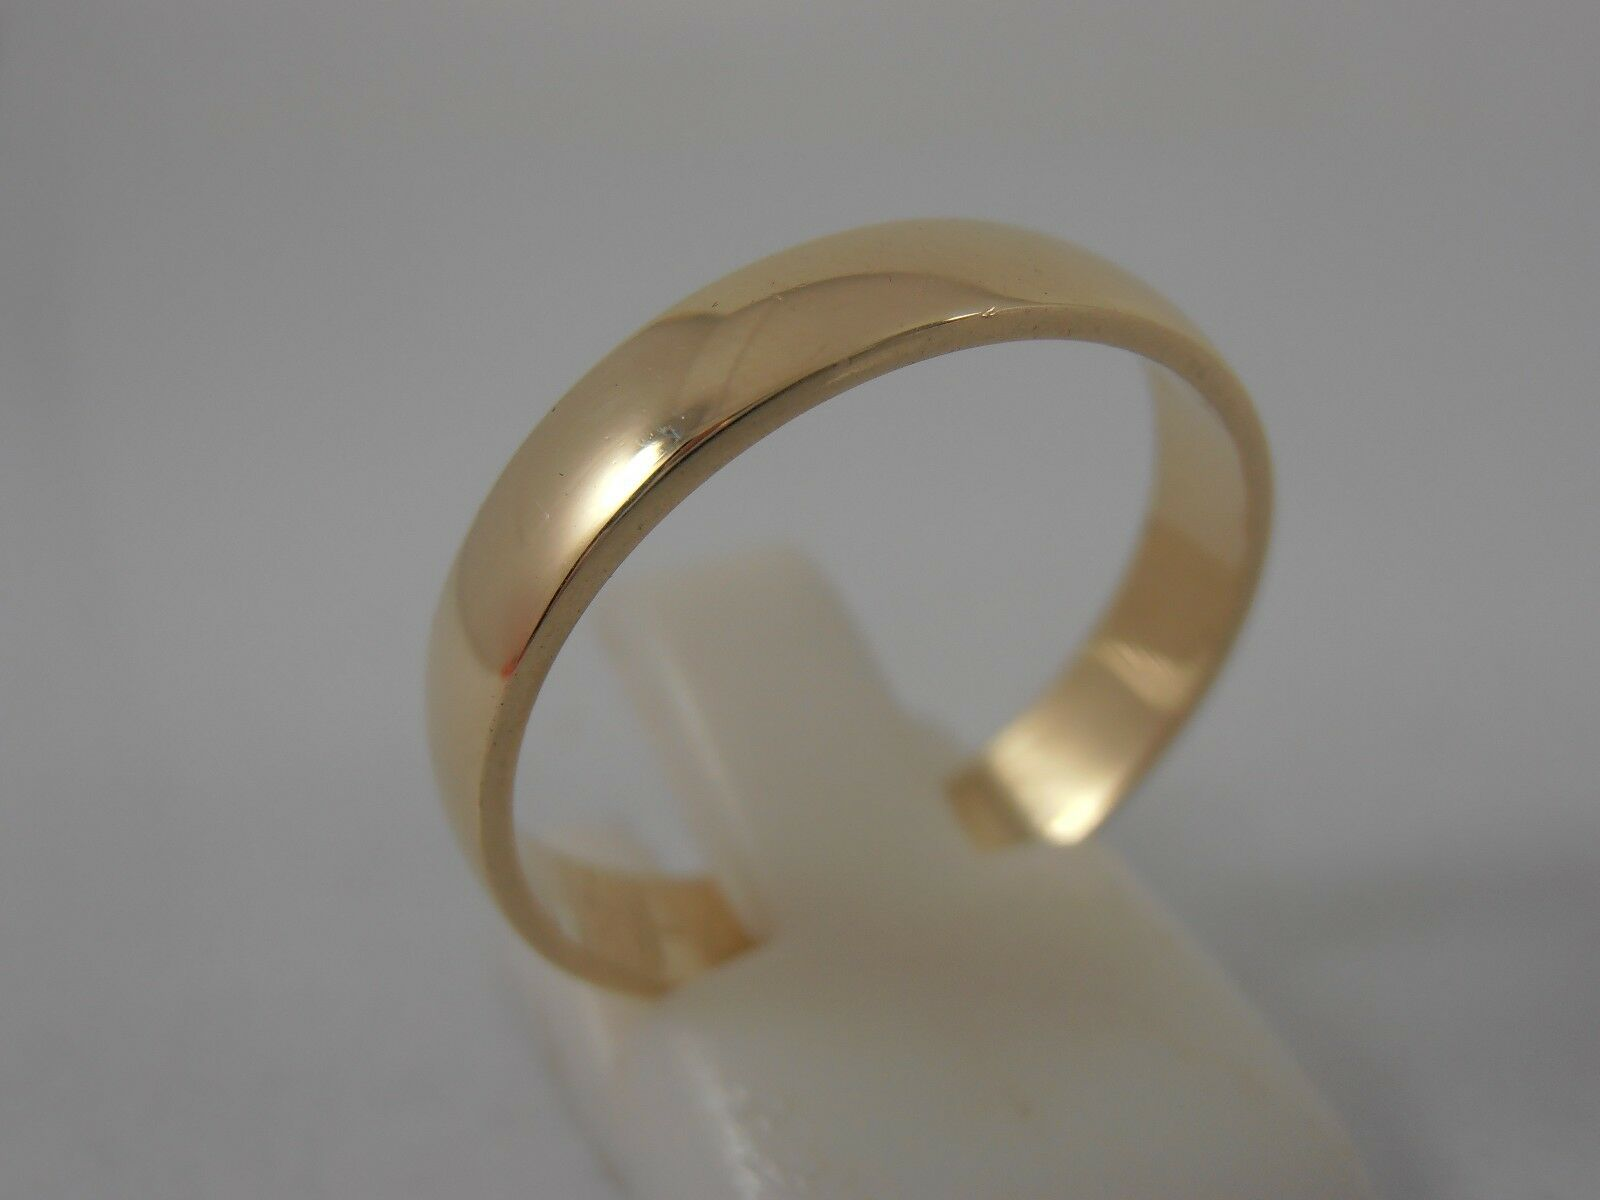 9ct YELLOW gold D SHAPE 4mm WEDDING RING SIZE S 1 2 FULLY HALLMARKED